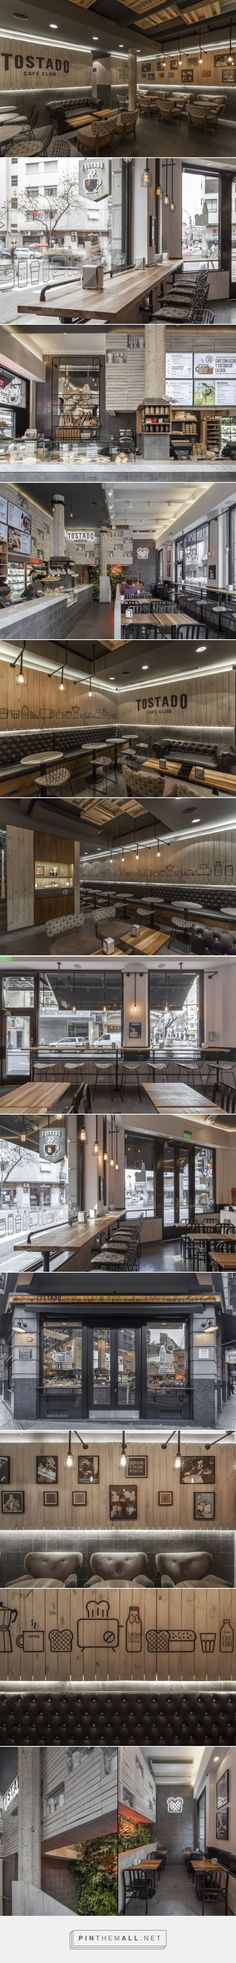 Tostado Cafe Club by Hitzig Militello Arquitectos, Buenos Aires – Argentina » Retail Design Blog - created on 2015-11-02 14:17:38